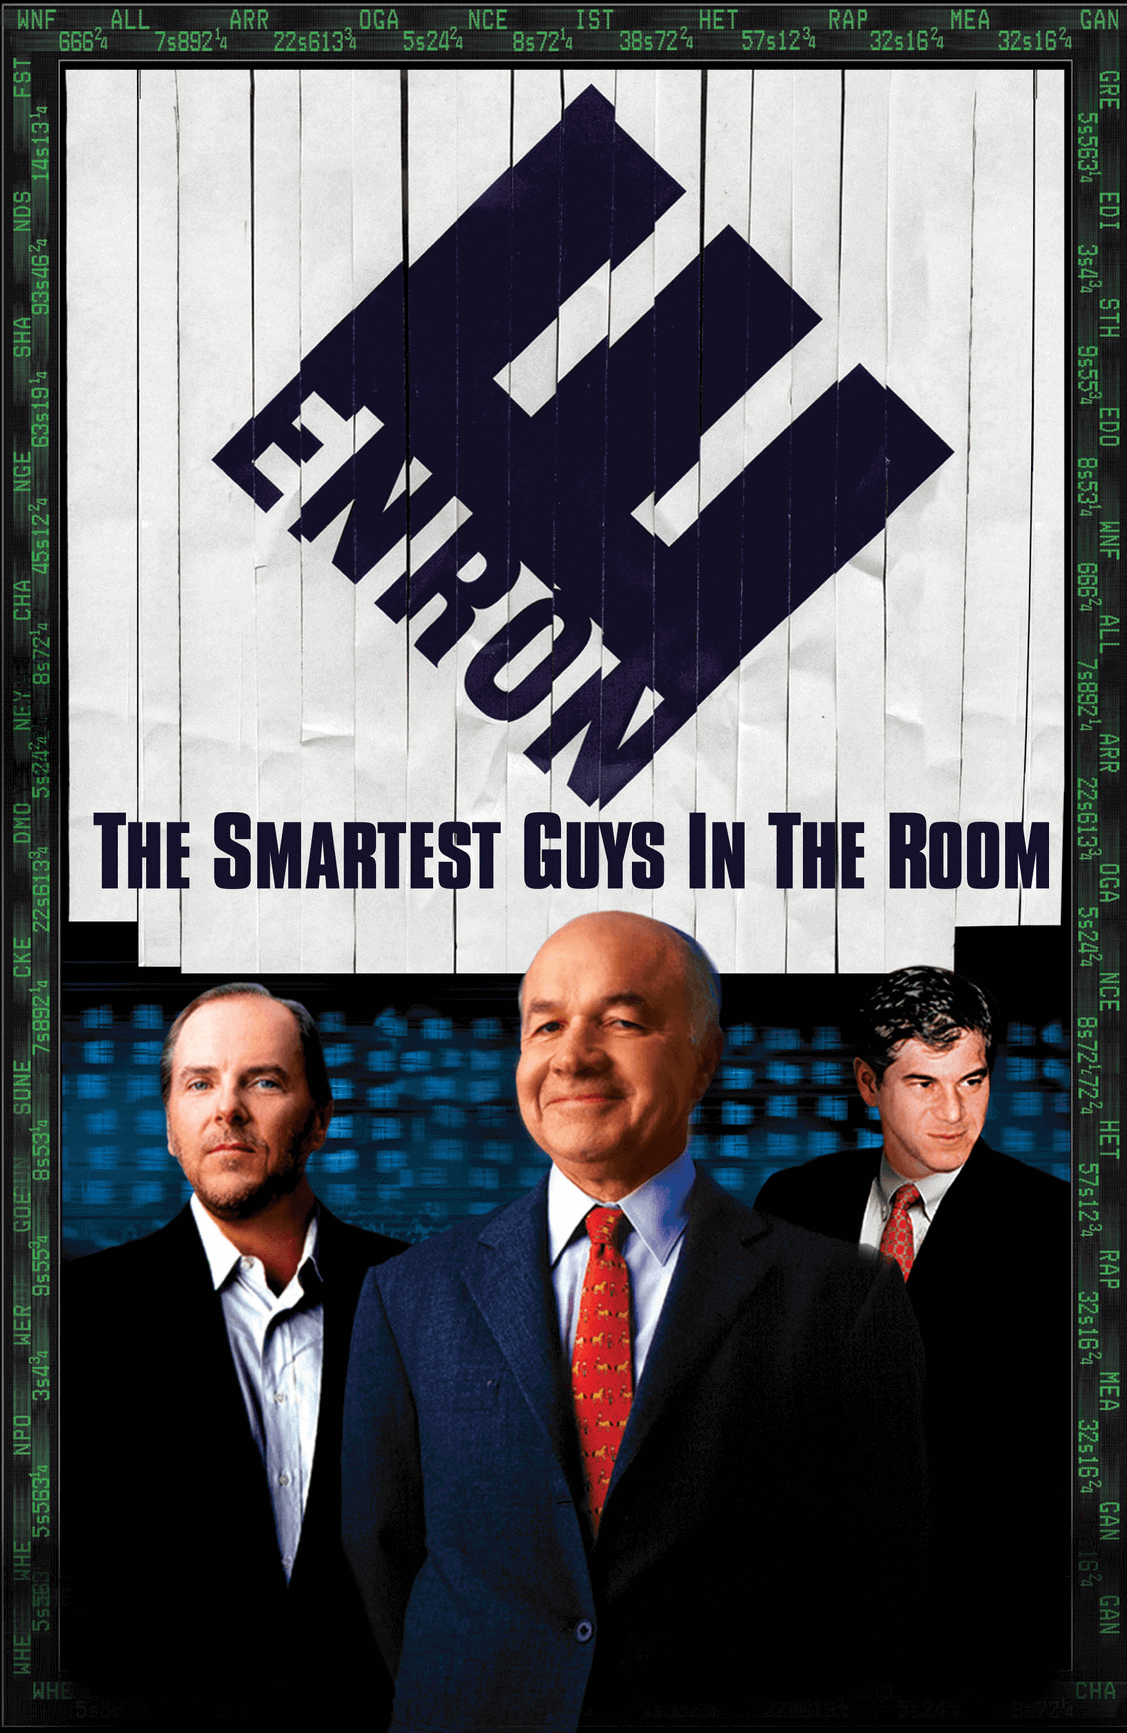 Enron - The Smartest Guys in the Room (2005)